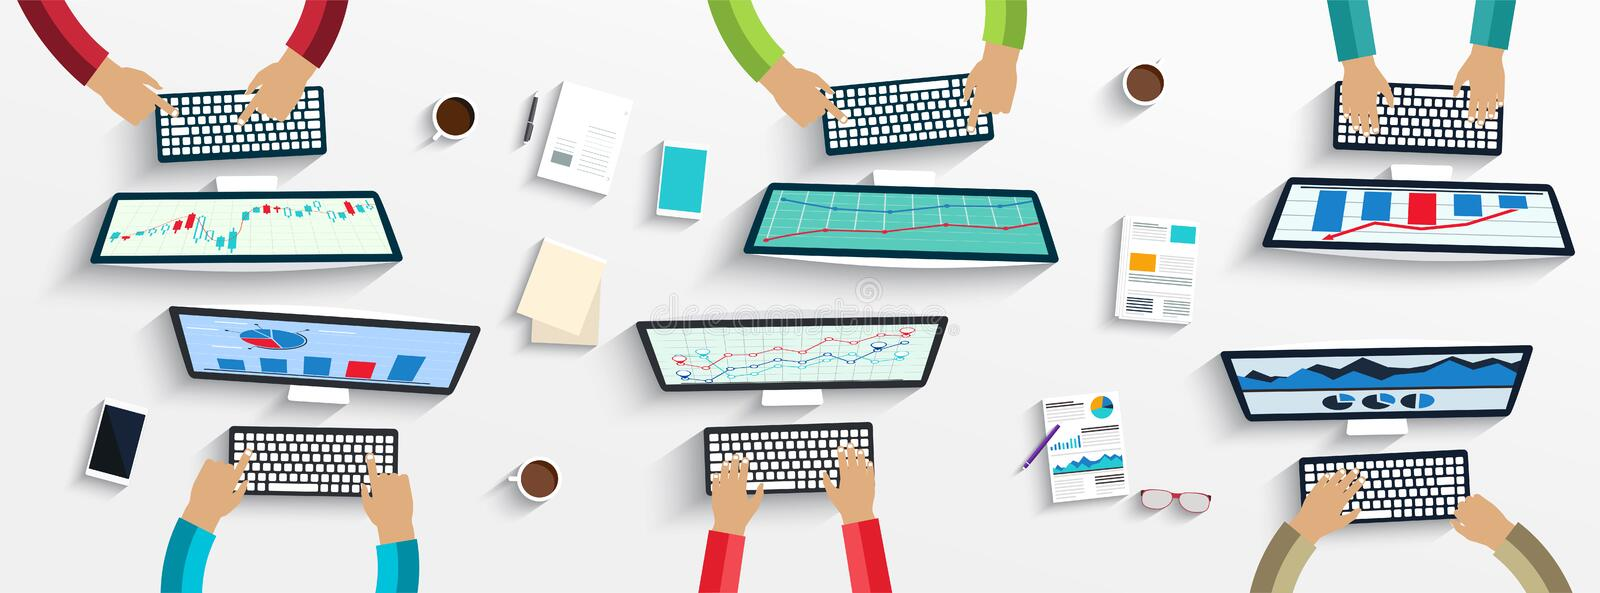 Group of business people working using digital devices on laptops, computers. Illustration stock illustration